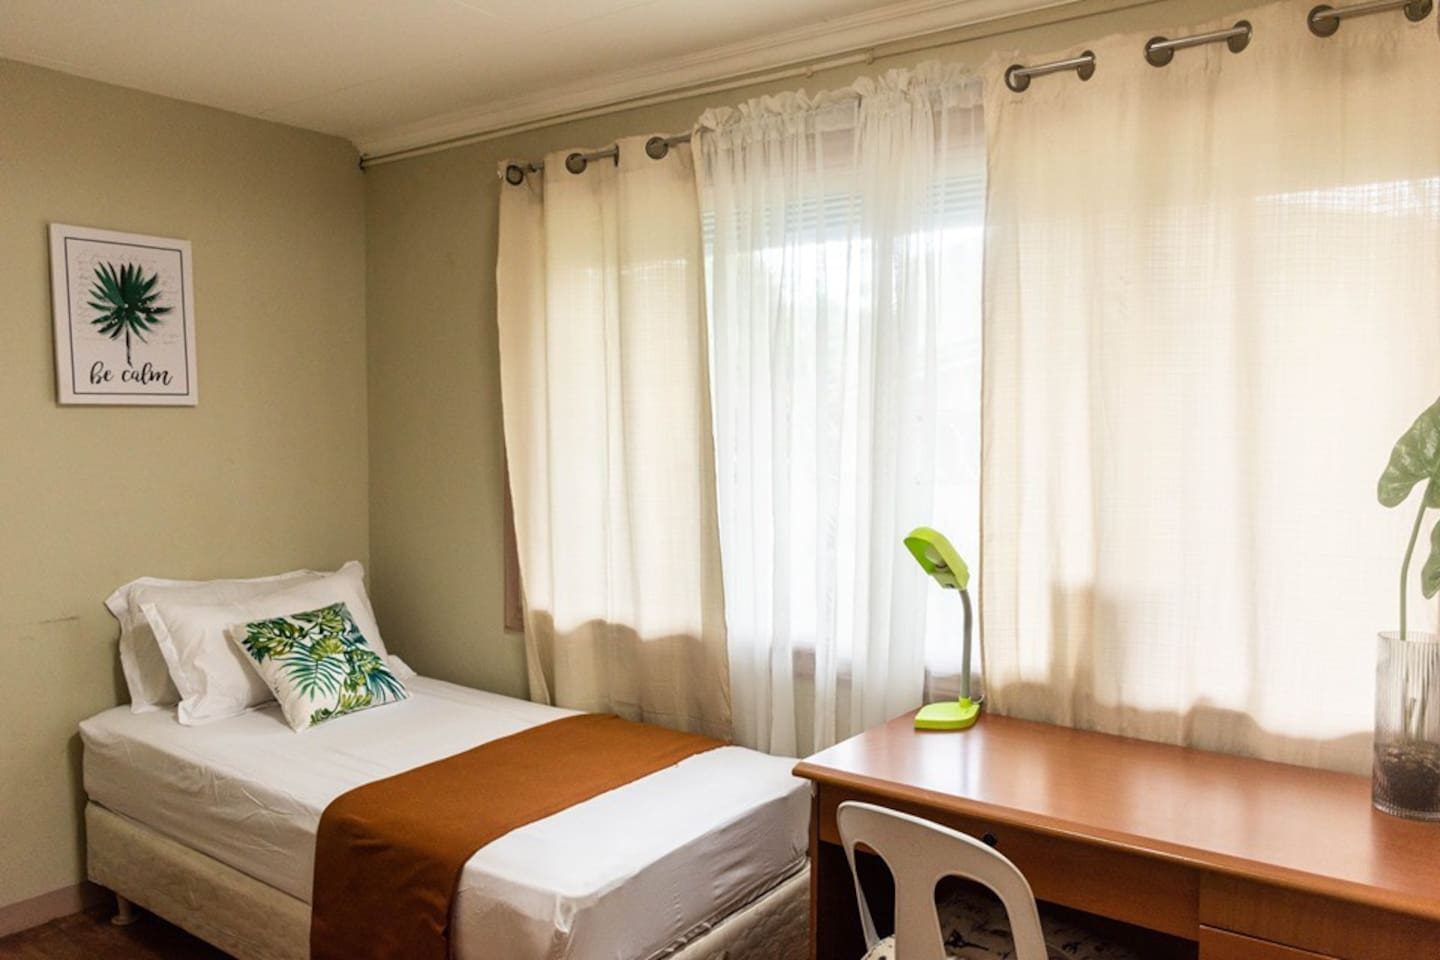 bed with two pillows, a desk, a chair and a wardrobe, an electric fan, and an air conditioner / 部屋には、ベッド、デスク、チェア、衣装棚、扇風機、そしてエアコンが備え付けられています。